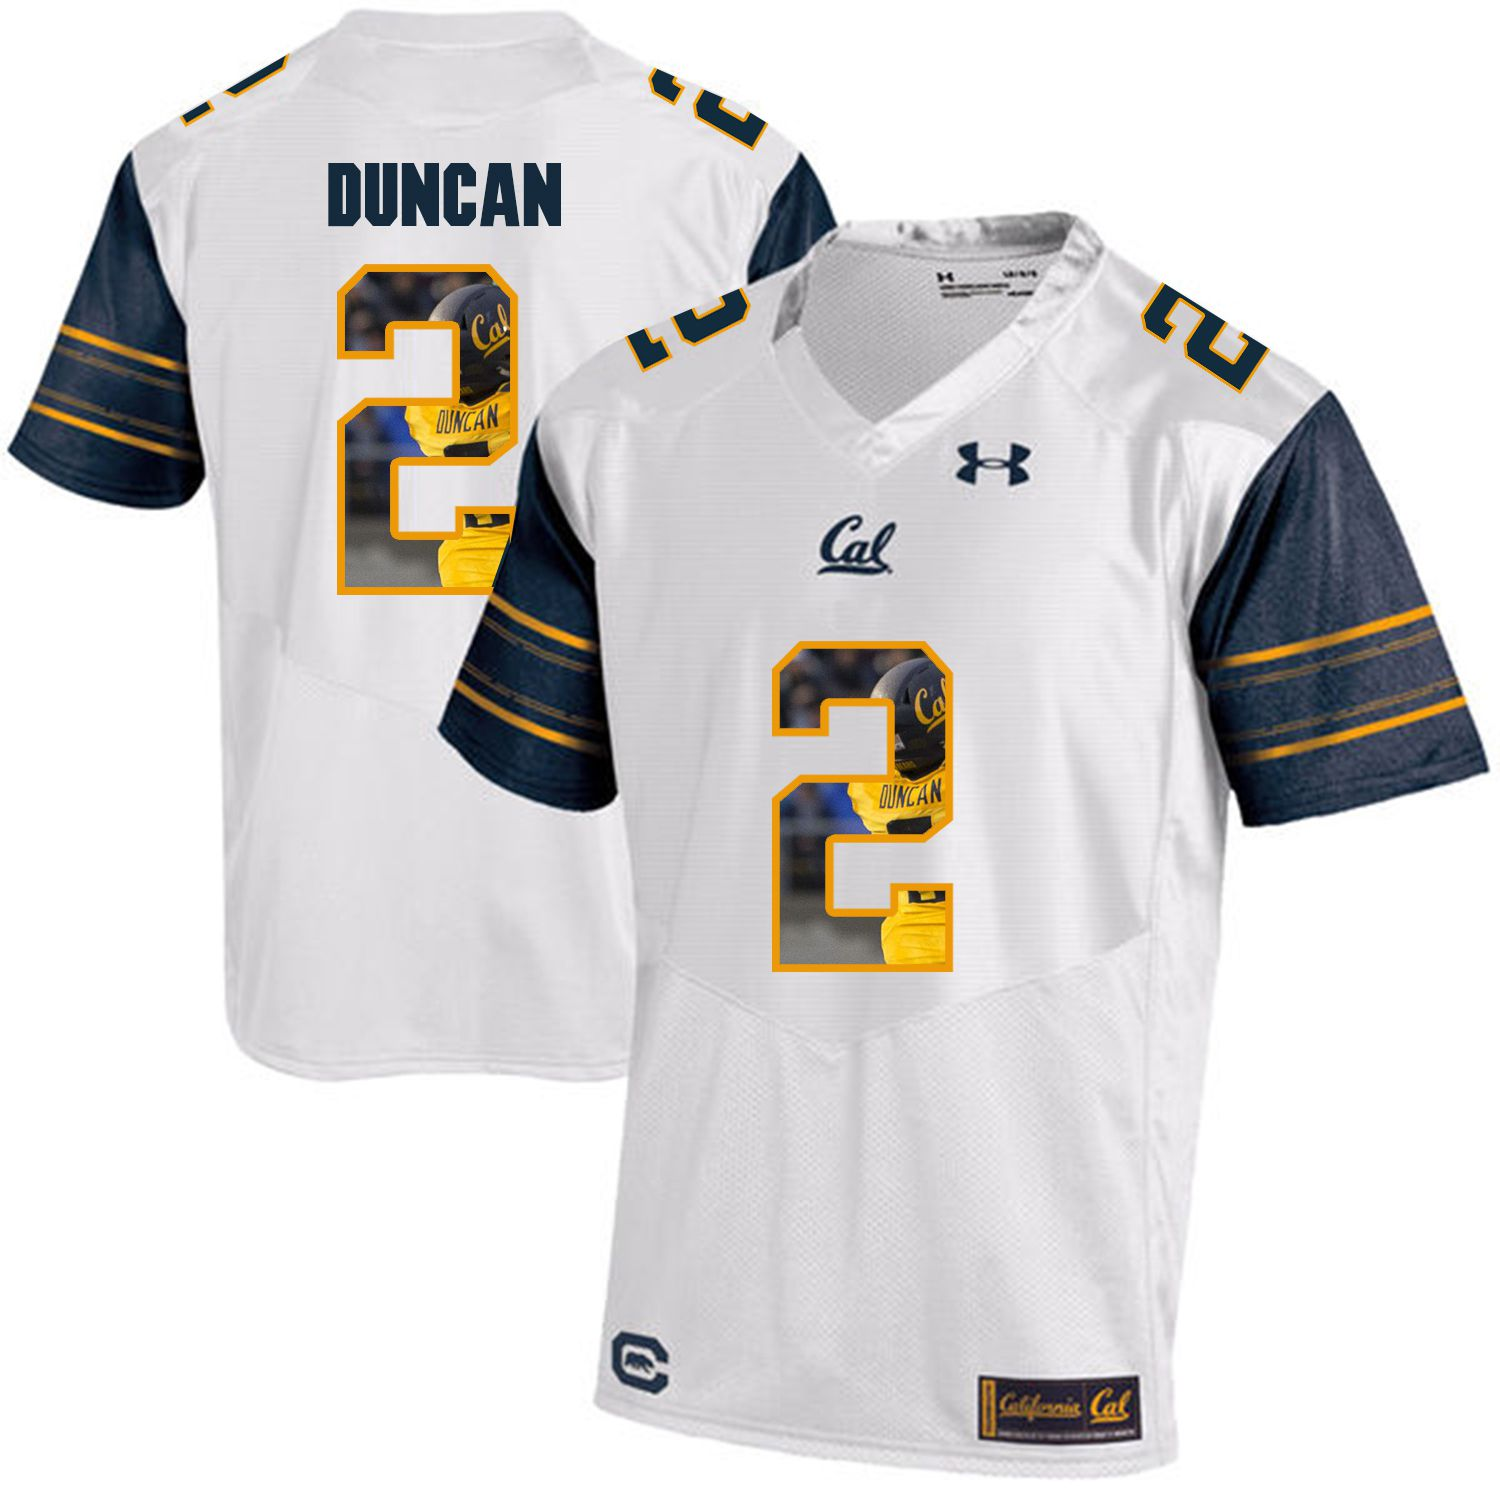 Men California Golden Bears 2 Jordan Duncan White Customized NCAA Jerseys